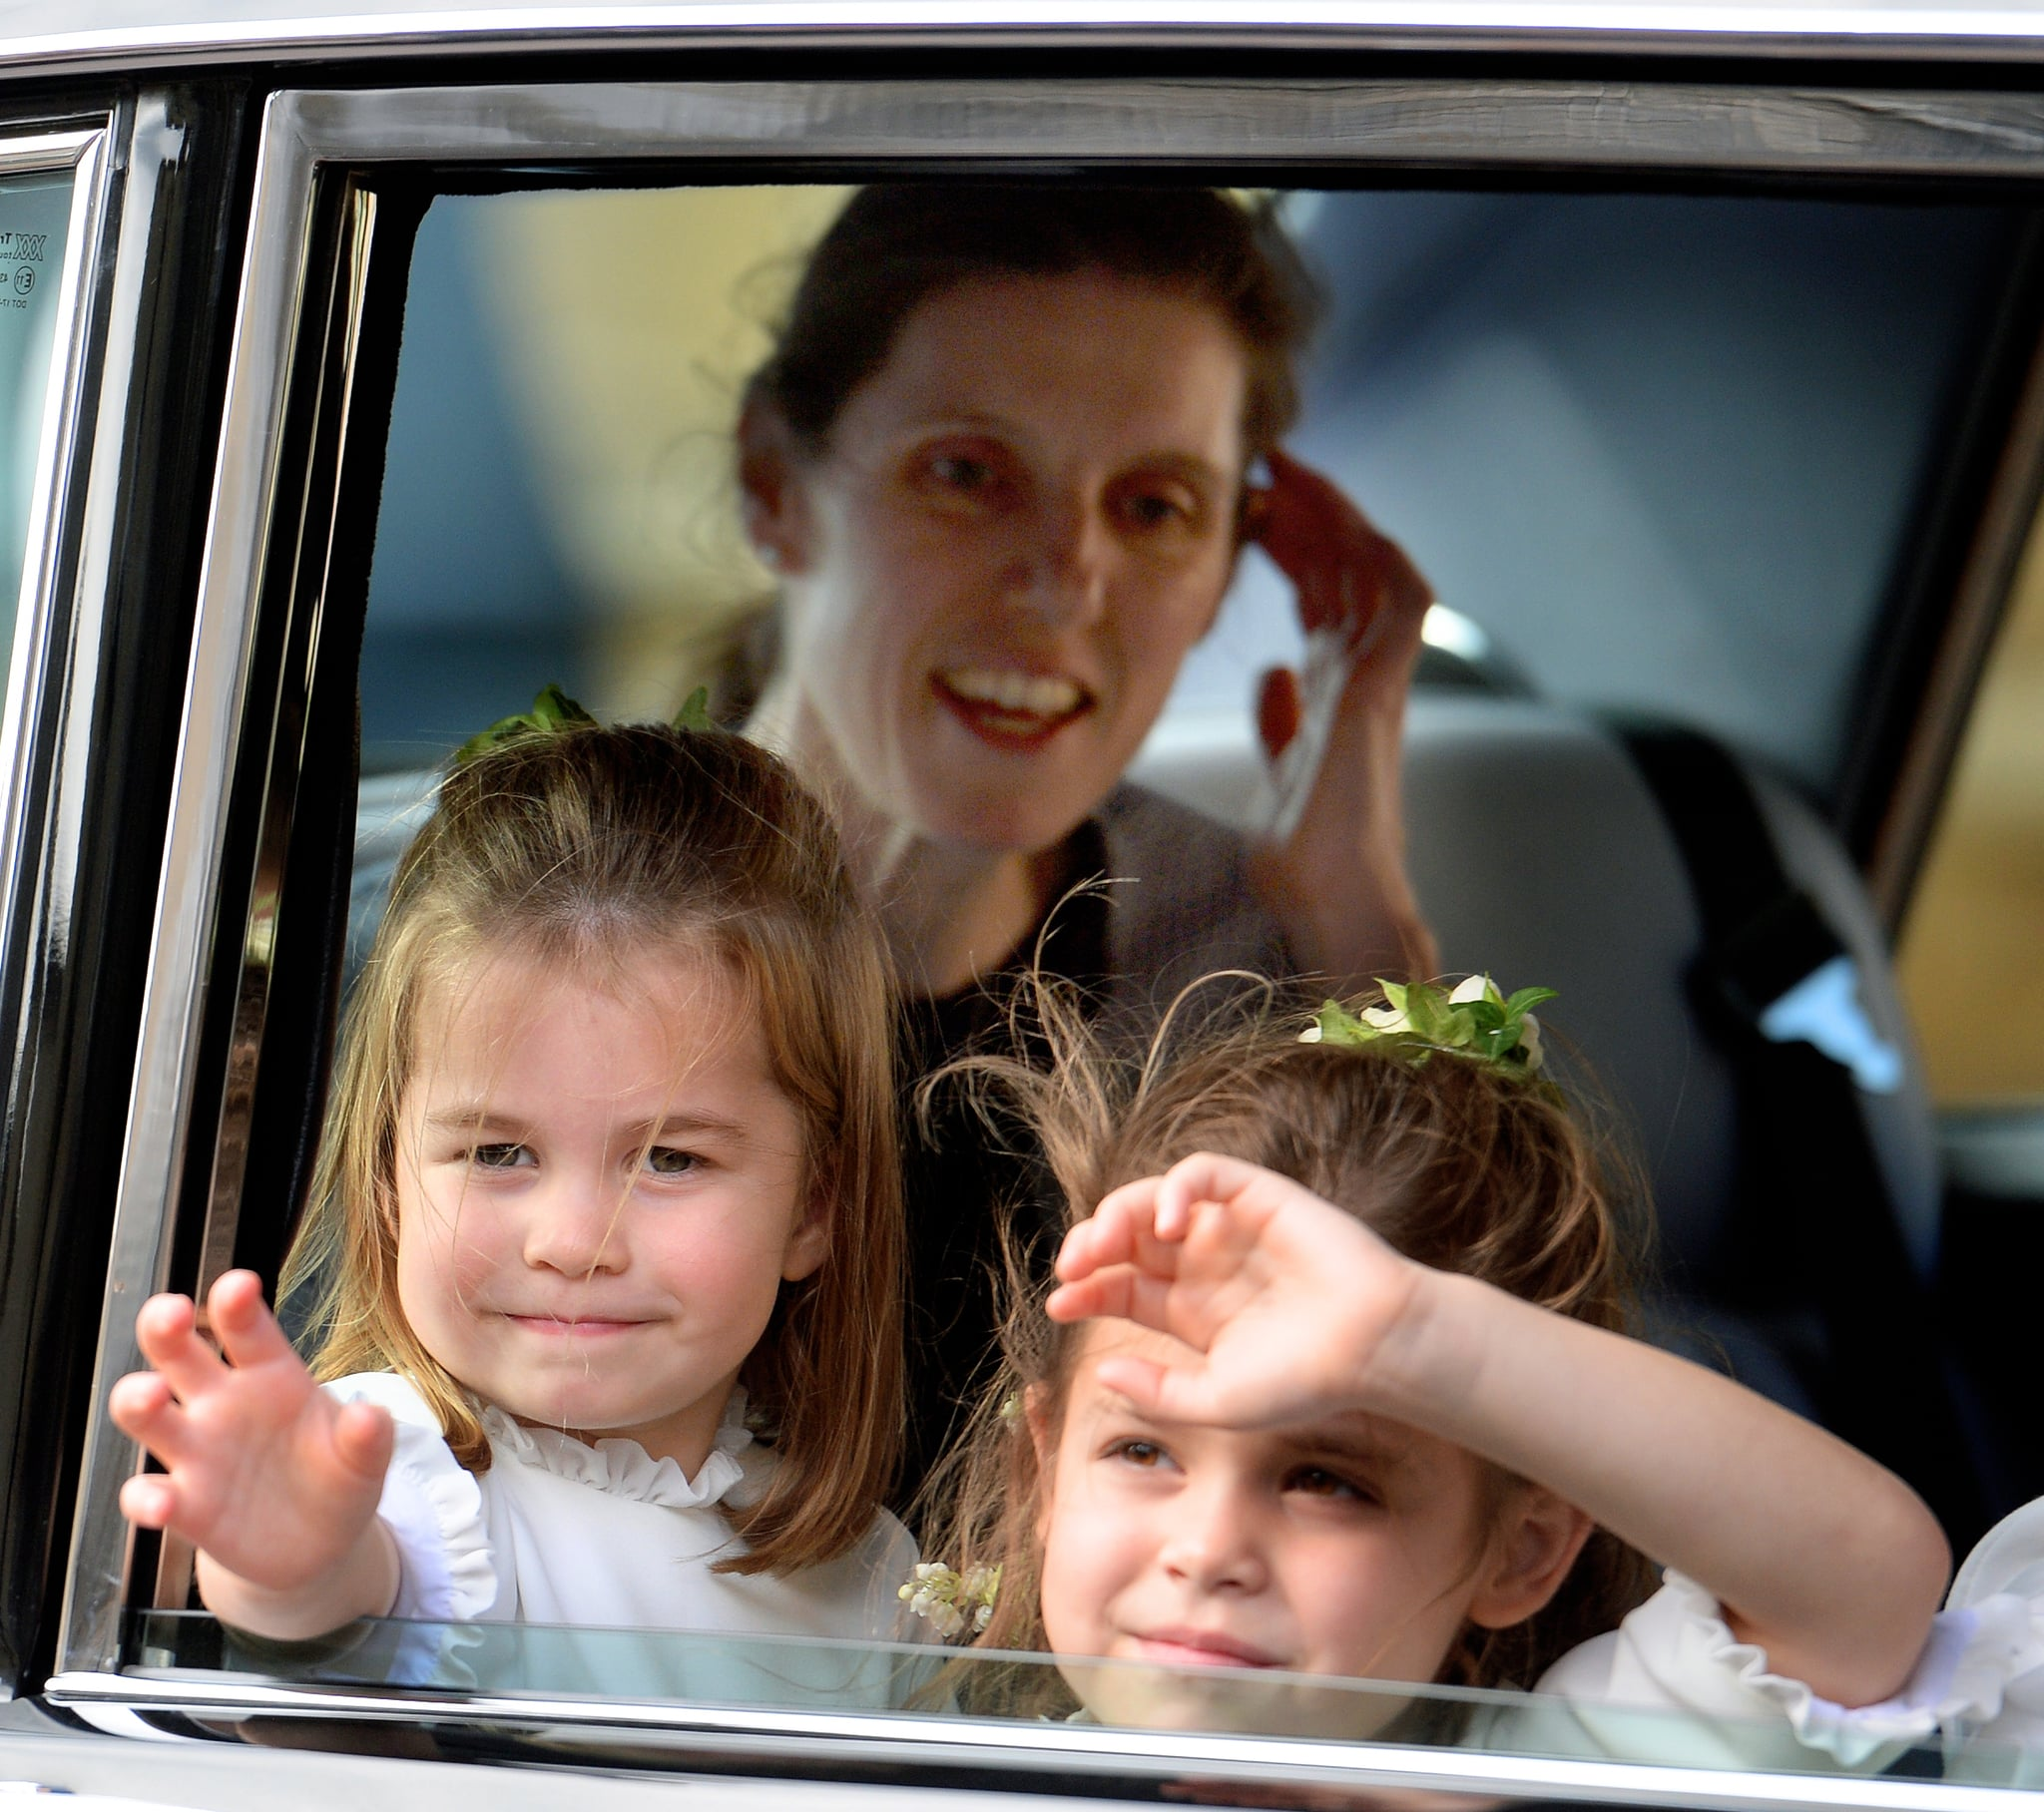 WINDSOR, UNITED KINGDOM - OCTOBER 12: (EMBARGOED FOR PUBLICATION IN UK NEWSPAPERS UNTIL 24 HOURS AFTER CREATE DATE AND TIME) Princess Charlotte of Cambridge and Theodora Williams, (accompanied by Princess Charlotte's nanny Maria Teresa Turrion Borrallo) attend the wedding of Princess Eugenie of York and Jack Brooksbank at St George's Chapel on October 12, 2018 in Windsor, England. (Photo by Pool/Max Mumby/Getty Images)